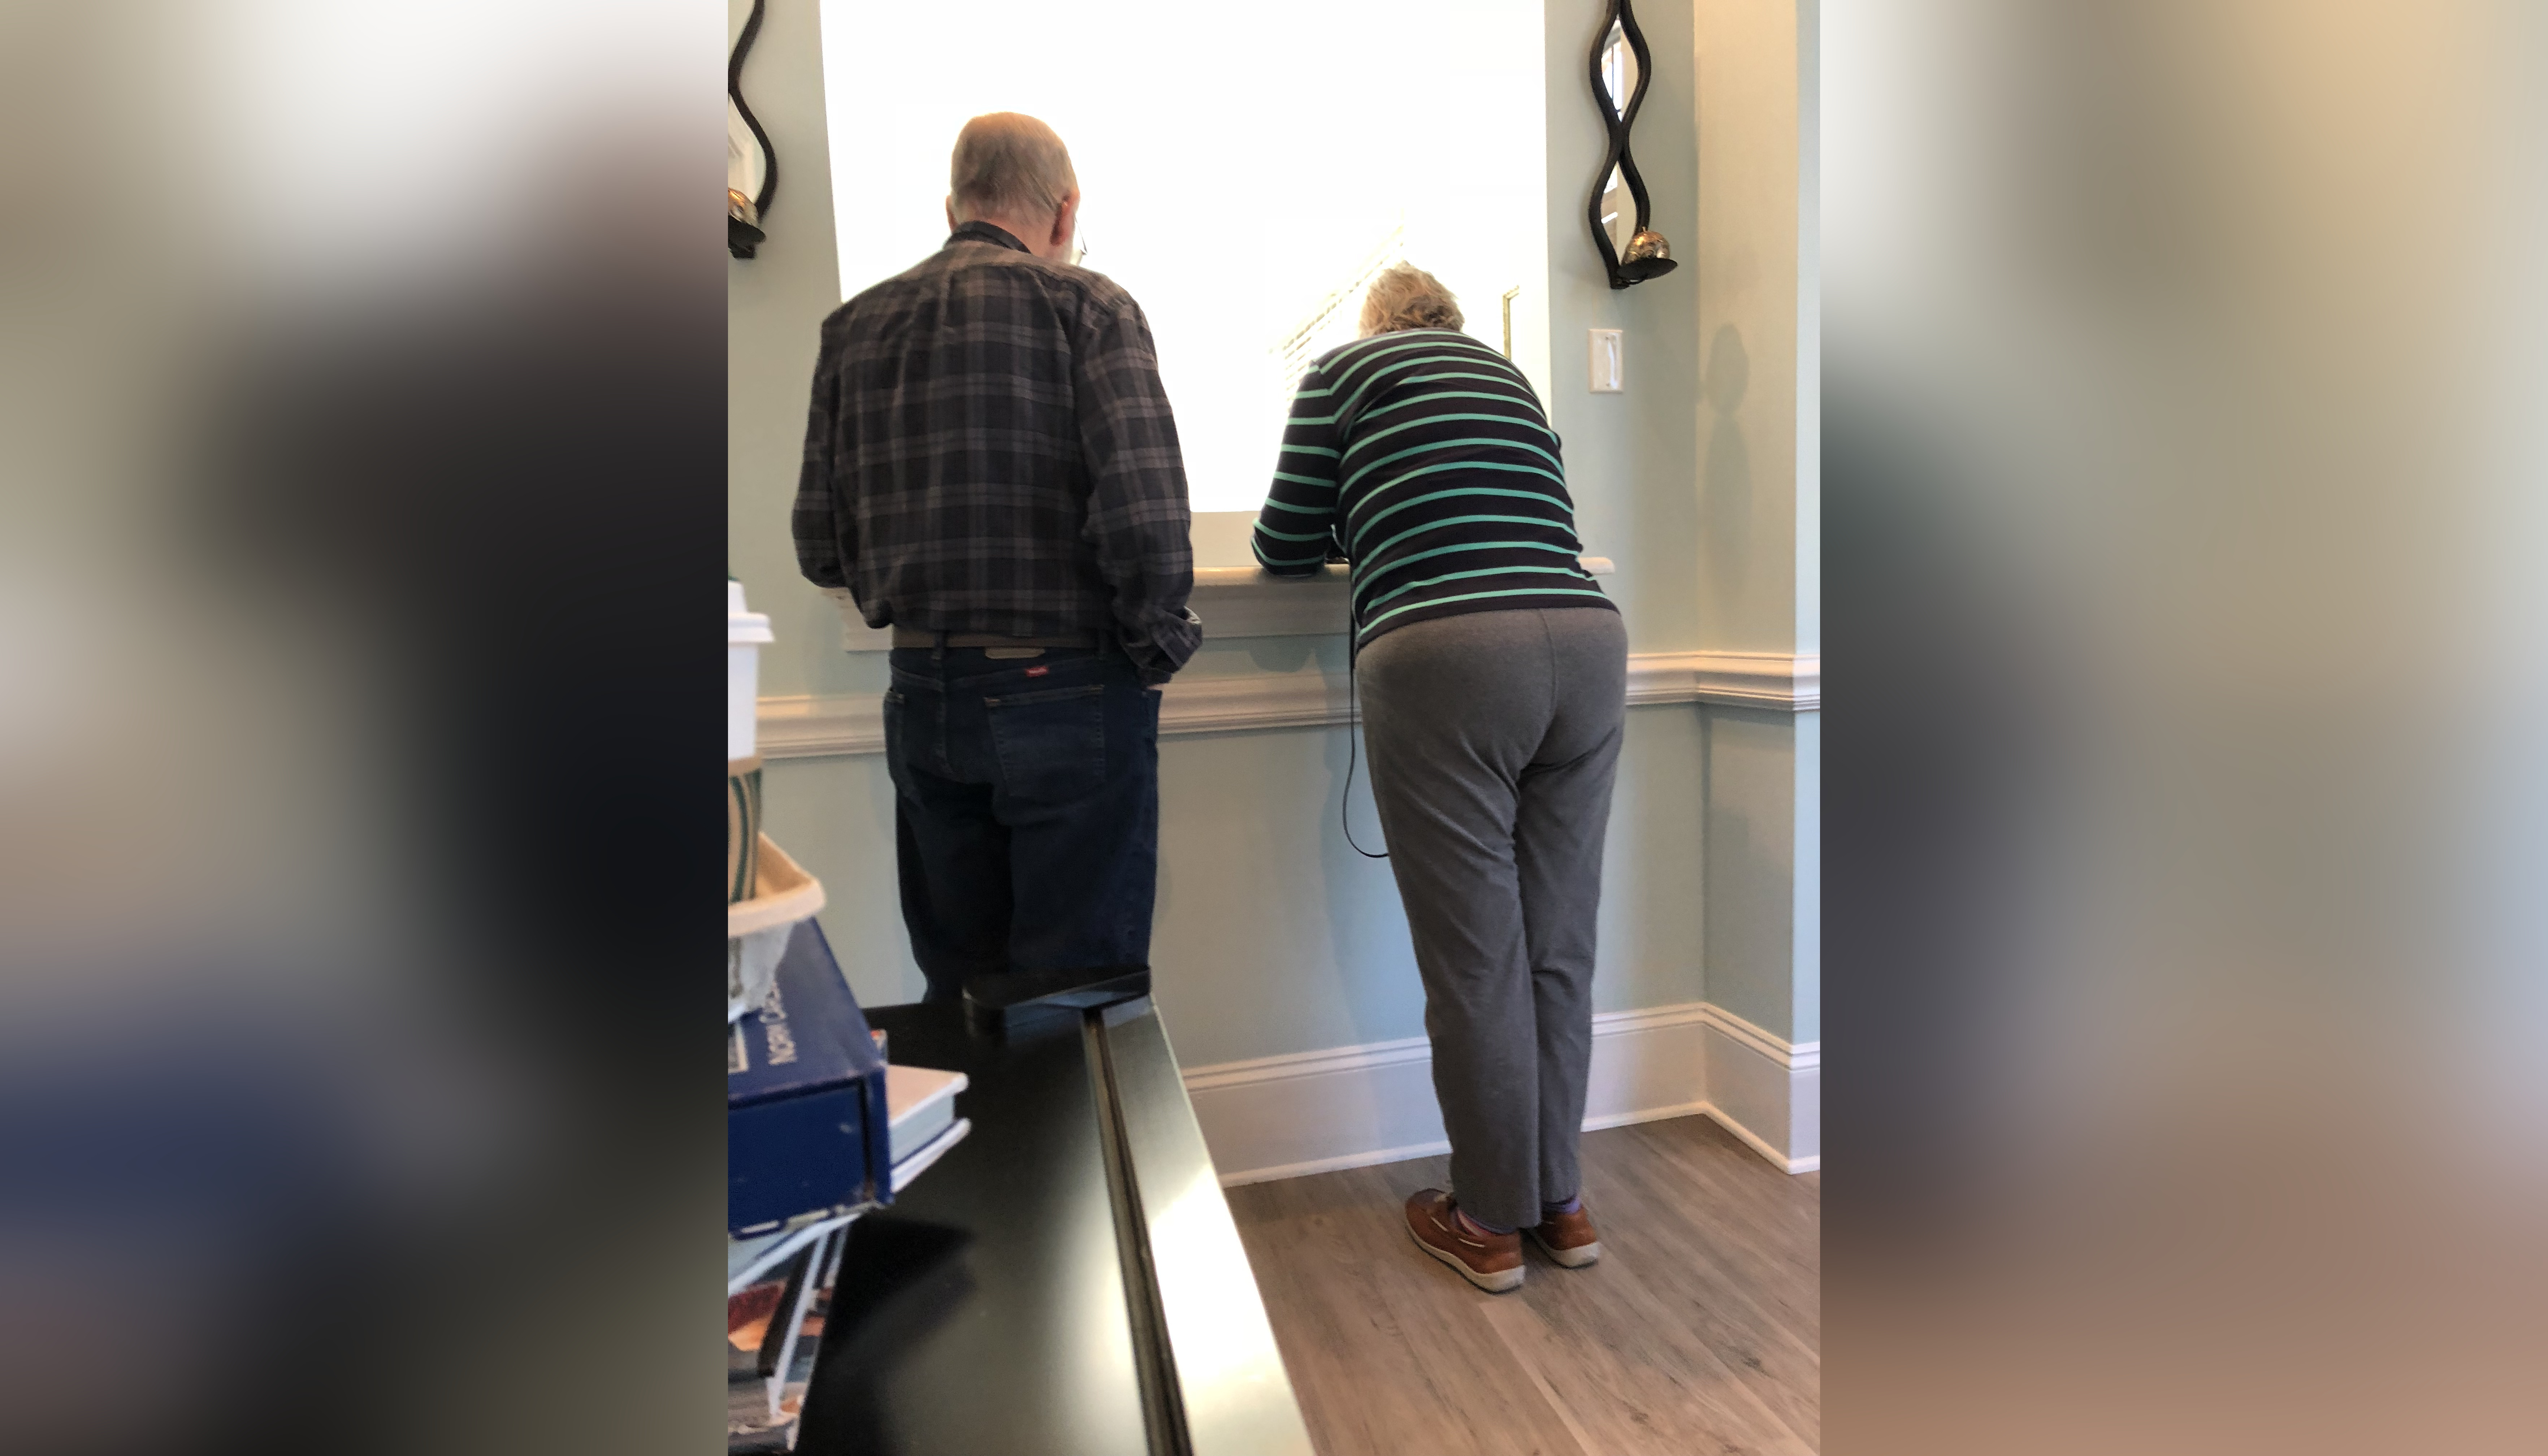 Elderly couple from behind